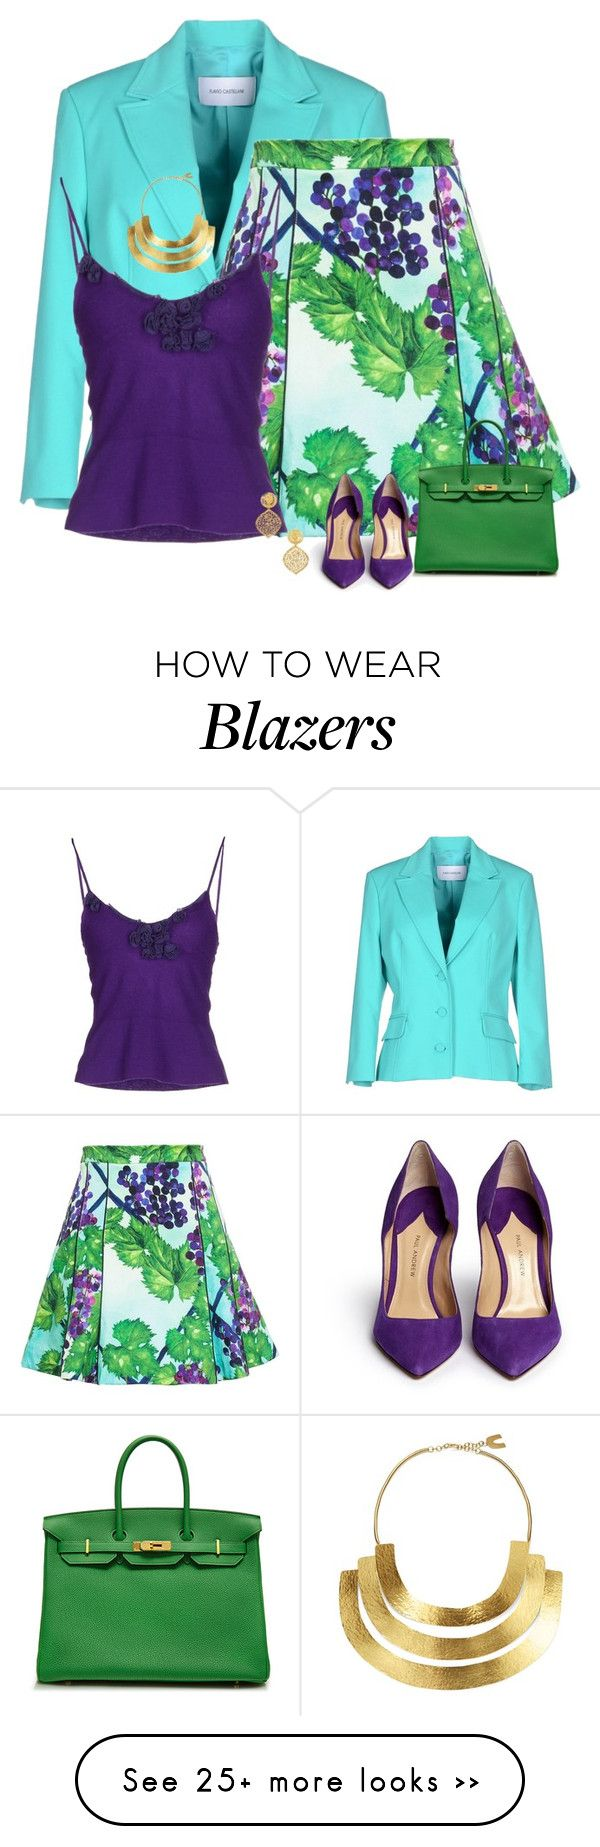 """grapes"" by divacrafts on Polyvore featuring Flavio Castellani, Isolda, Ermanno Scervino, Paul Andrew, Hermès, Hervé Van Der Straeten, Kenneth Jay Lane and Original"